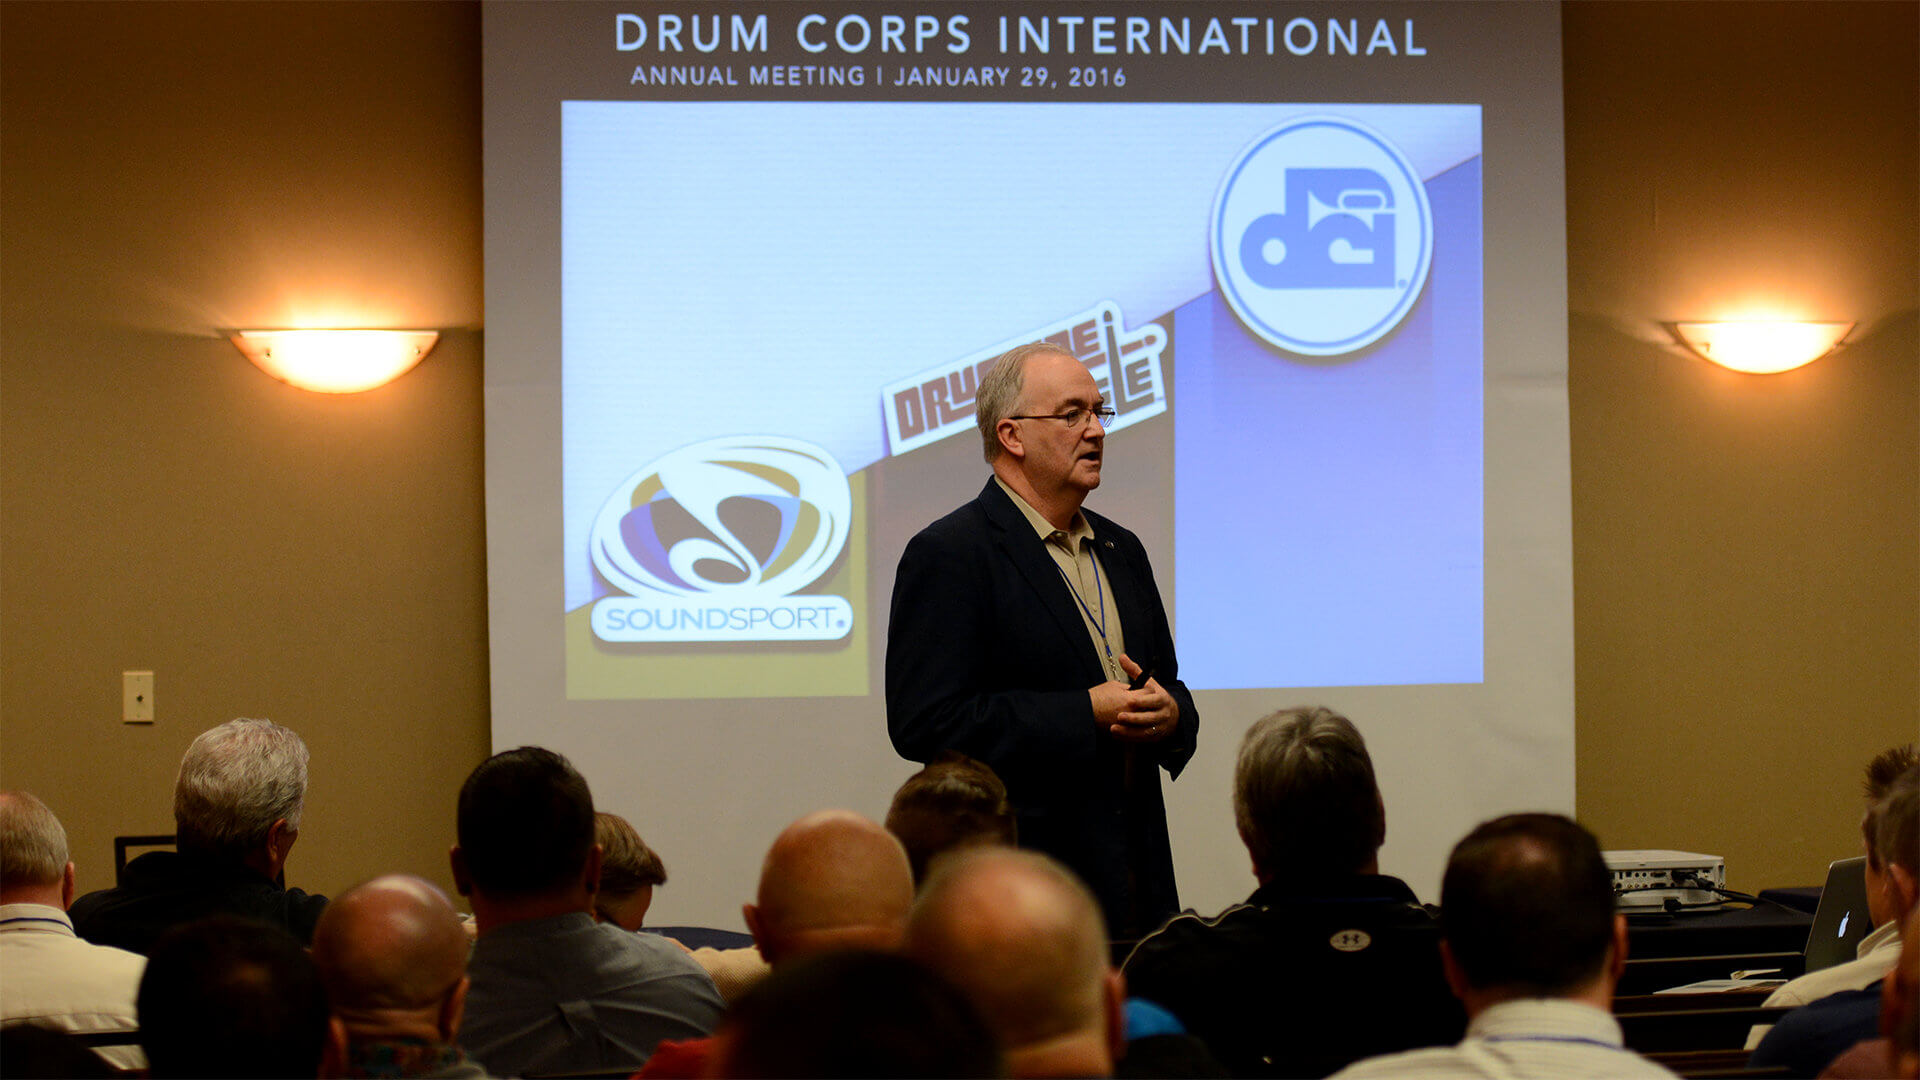 Field Pass Podcast: Inside the 2016 DCI Annual Meeting